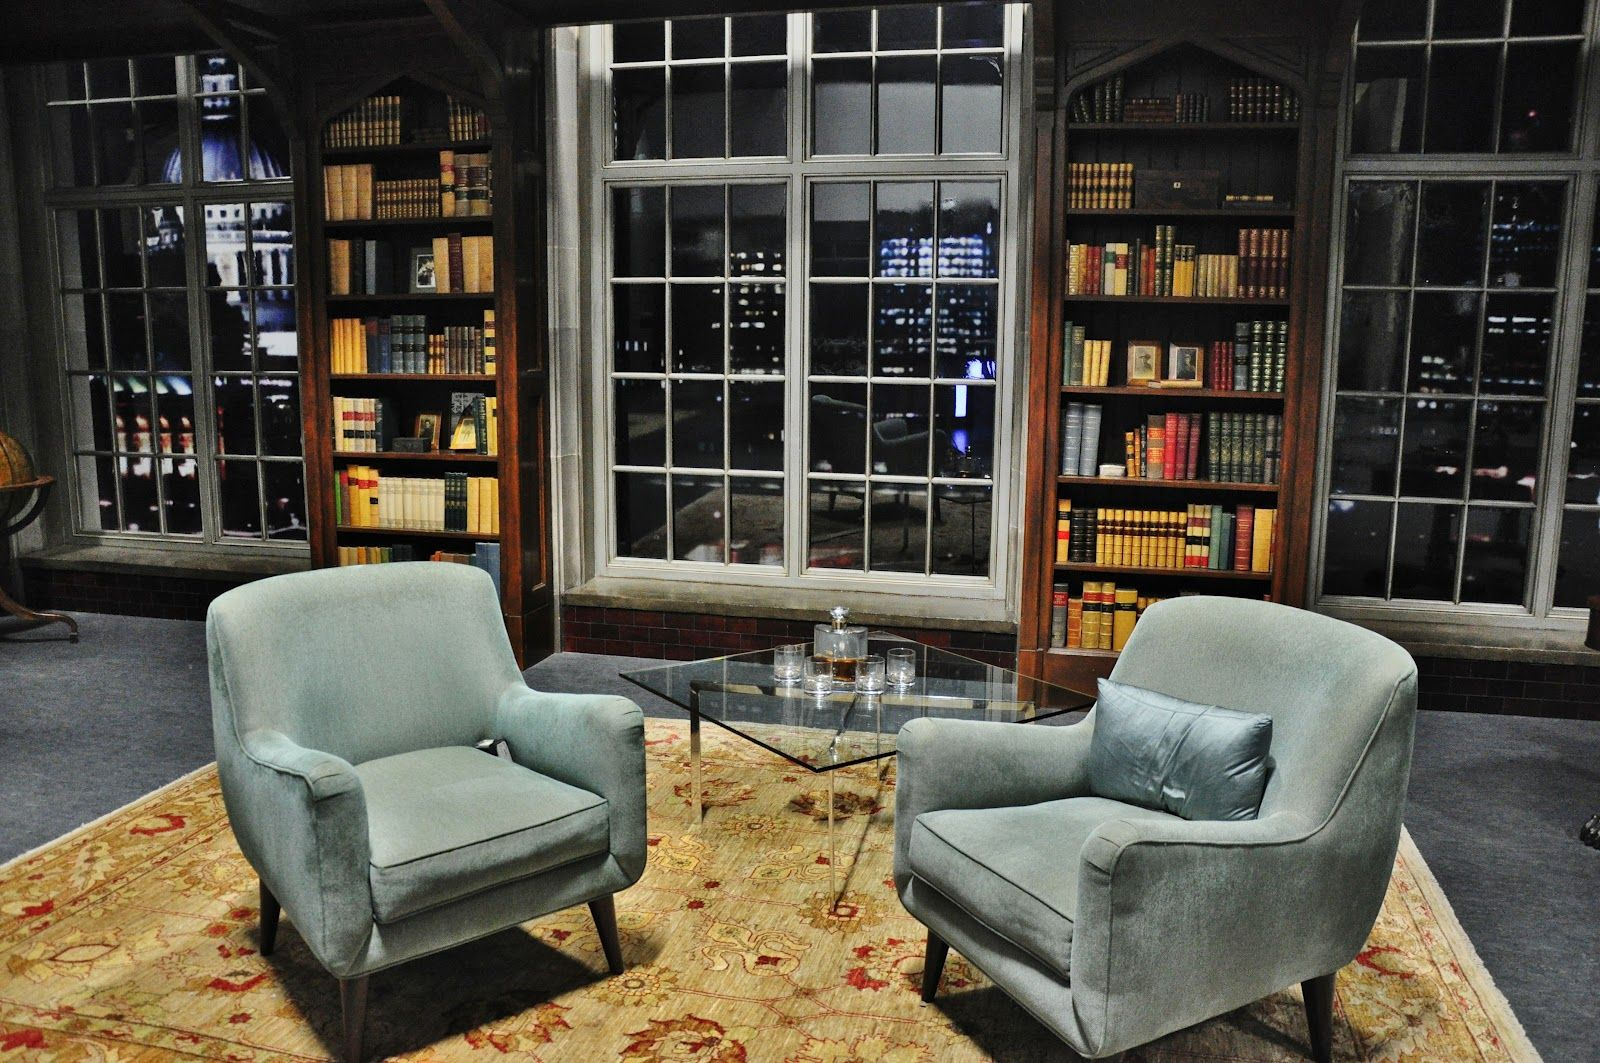 late night talk show set - Google Search